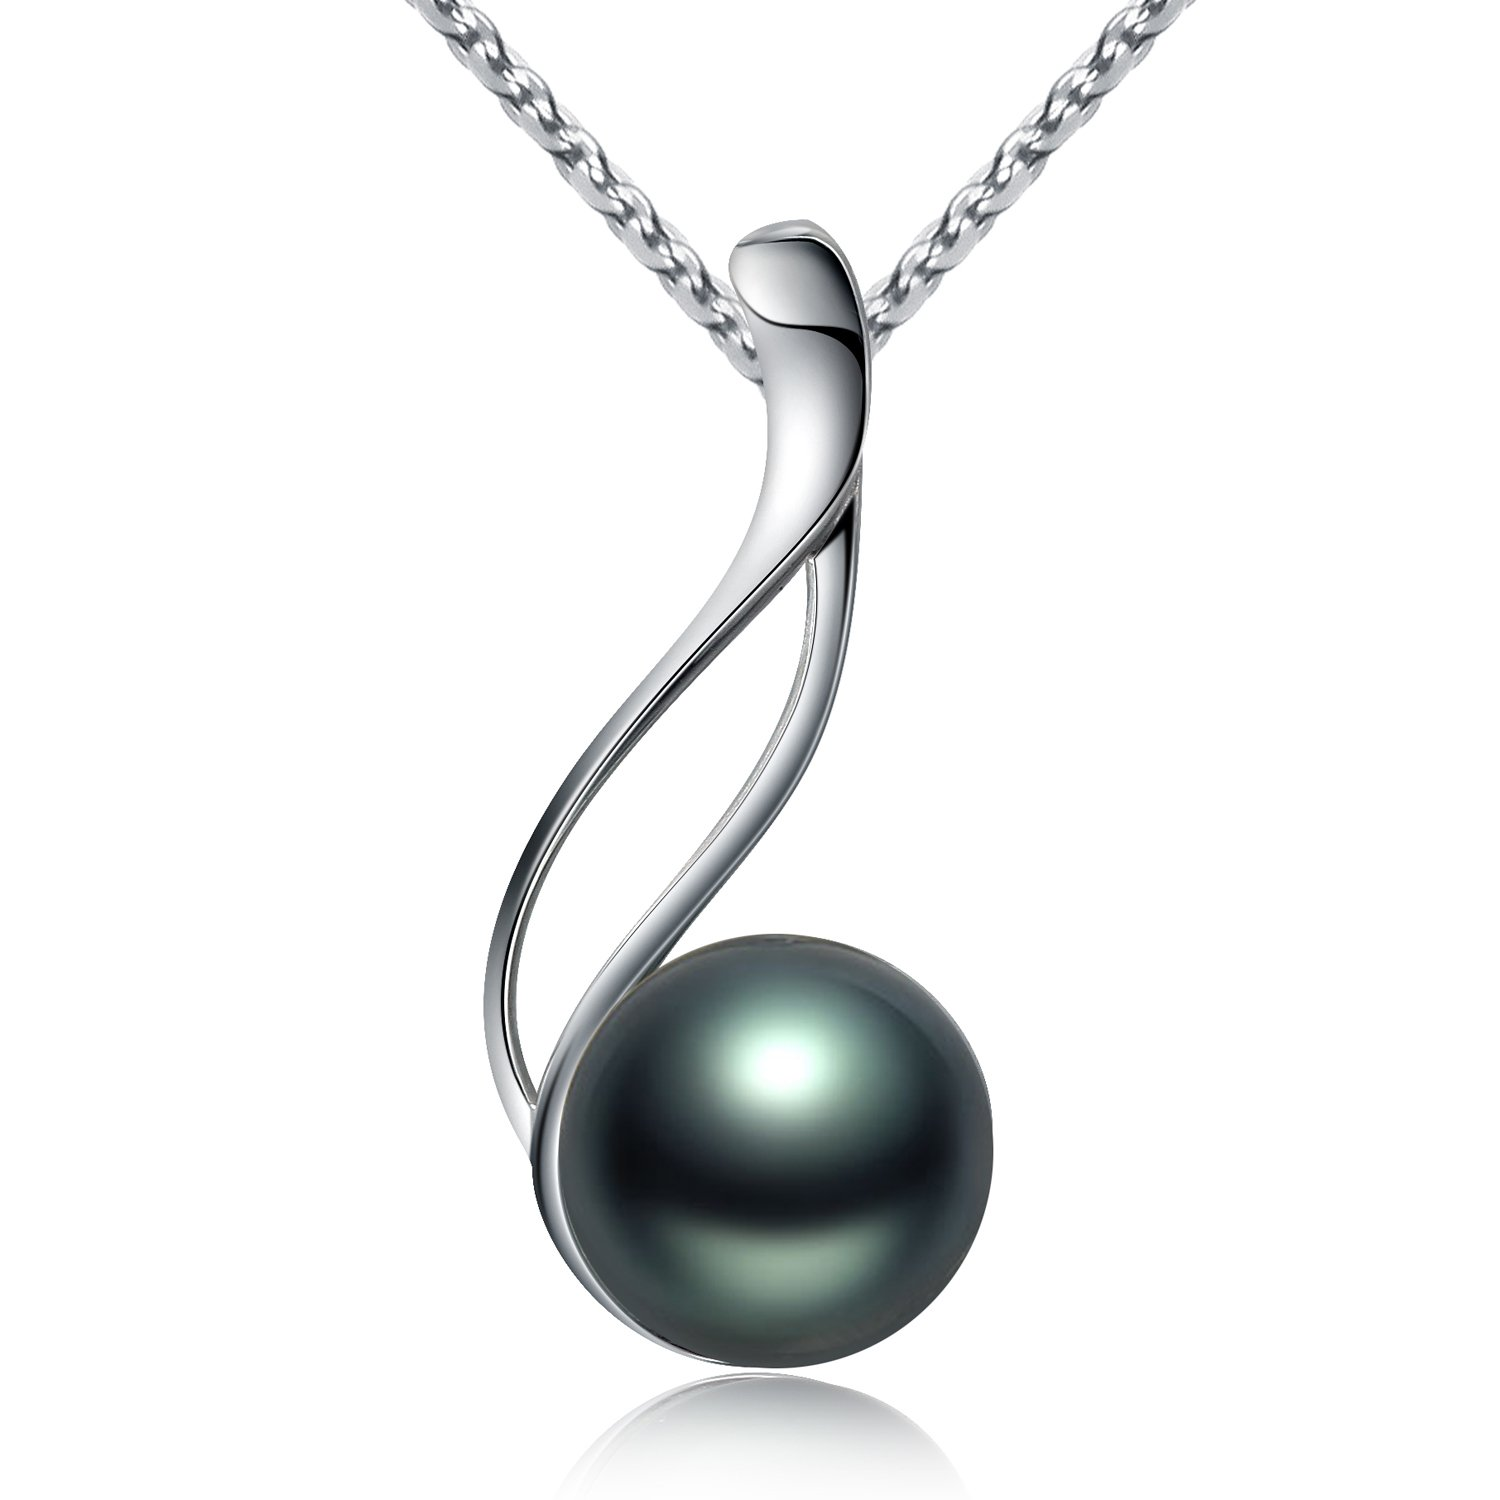 pendants big all the gsspendant source types pendant golden south pearl sea on save